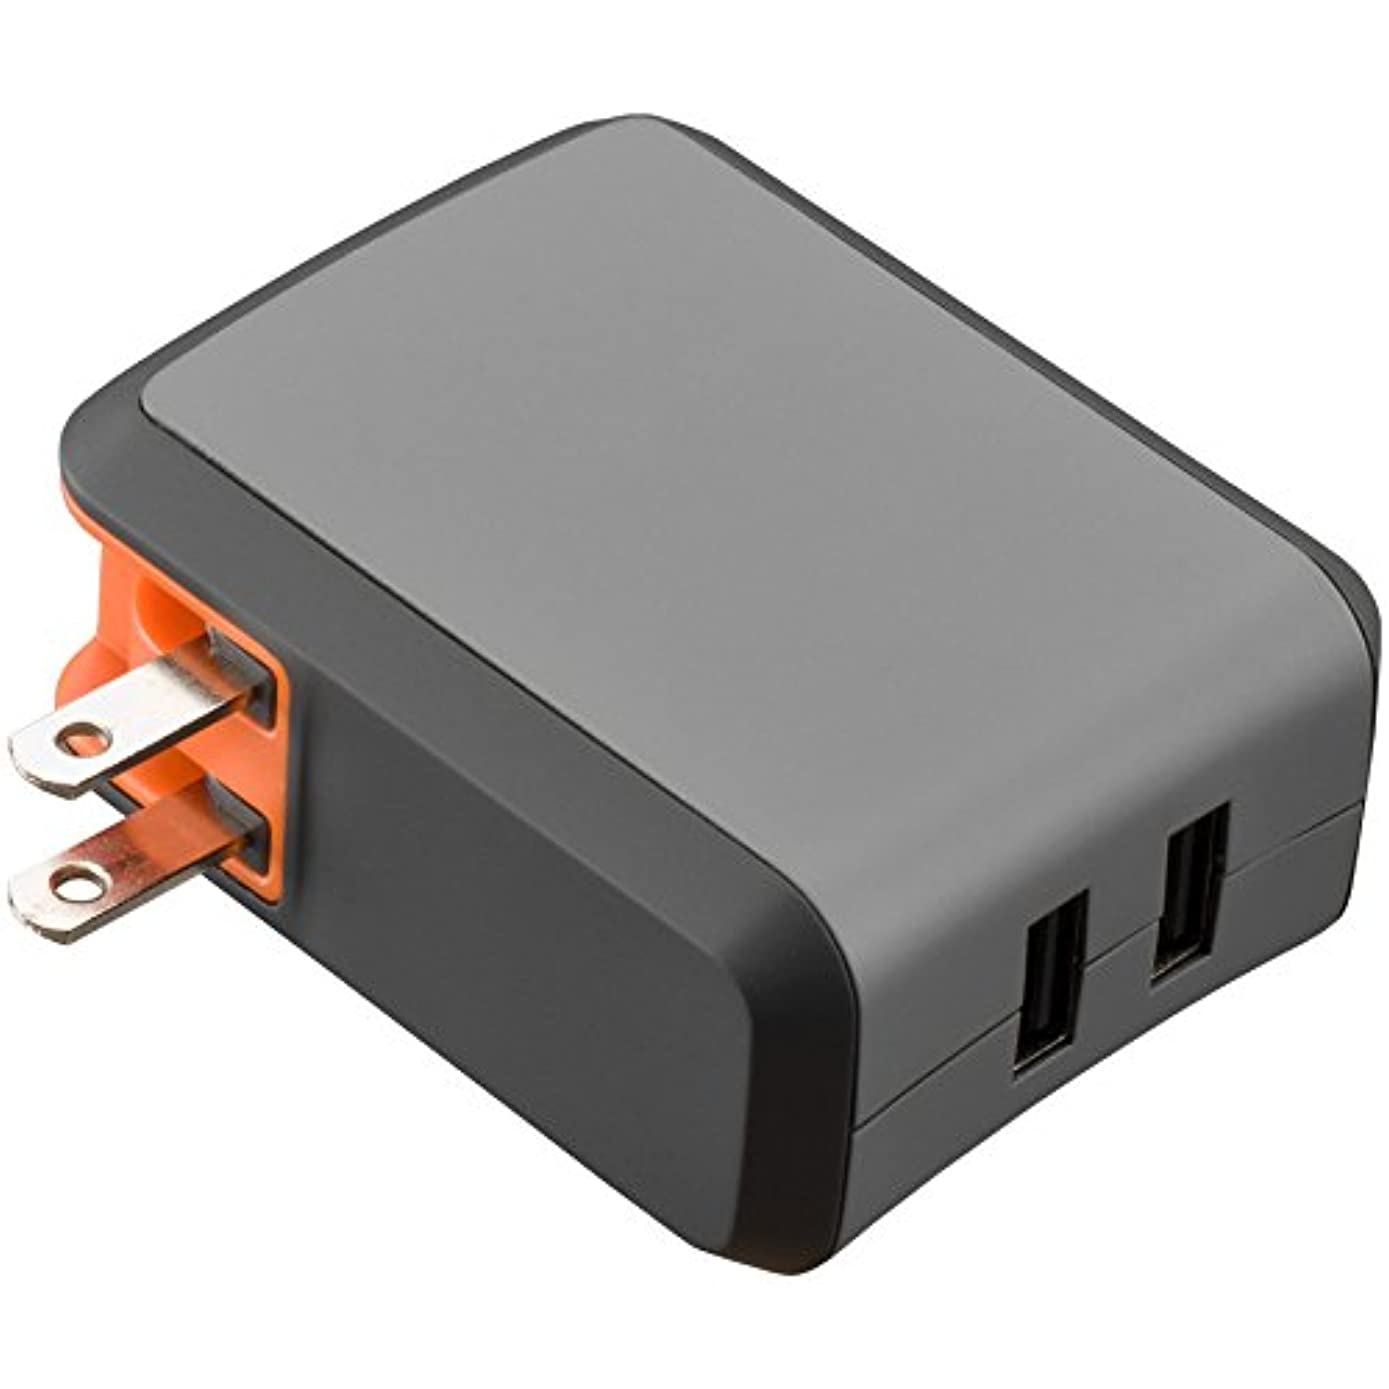 Ventev Wall Port R2240 Wall Charger Dual 2.4A